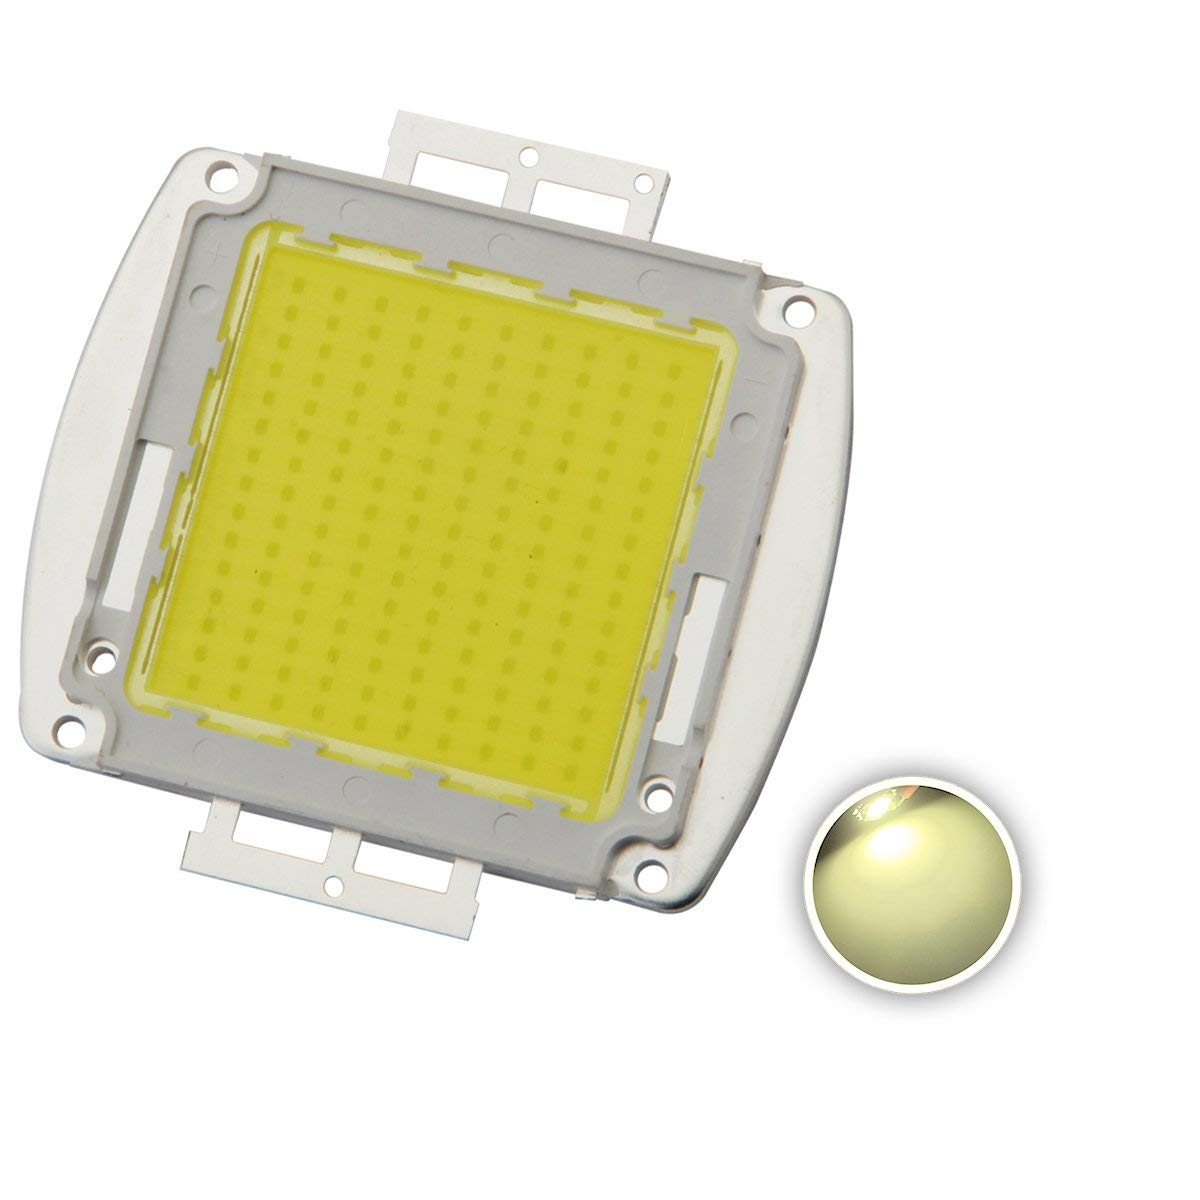 120W High Power LED Emitter White 2700-35000K